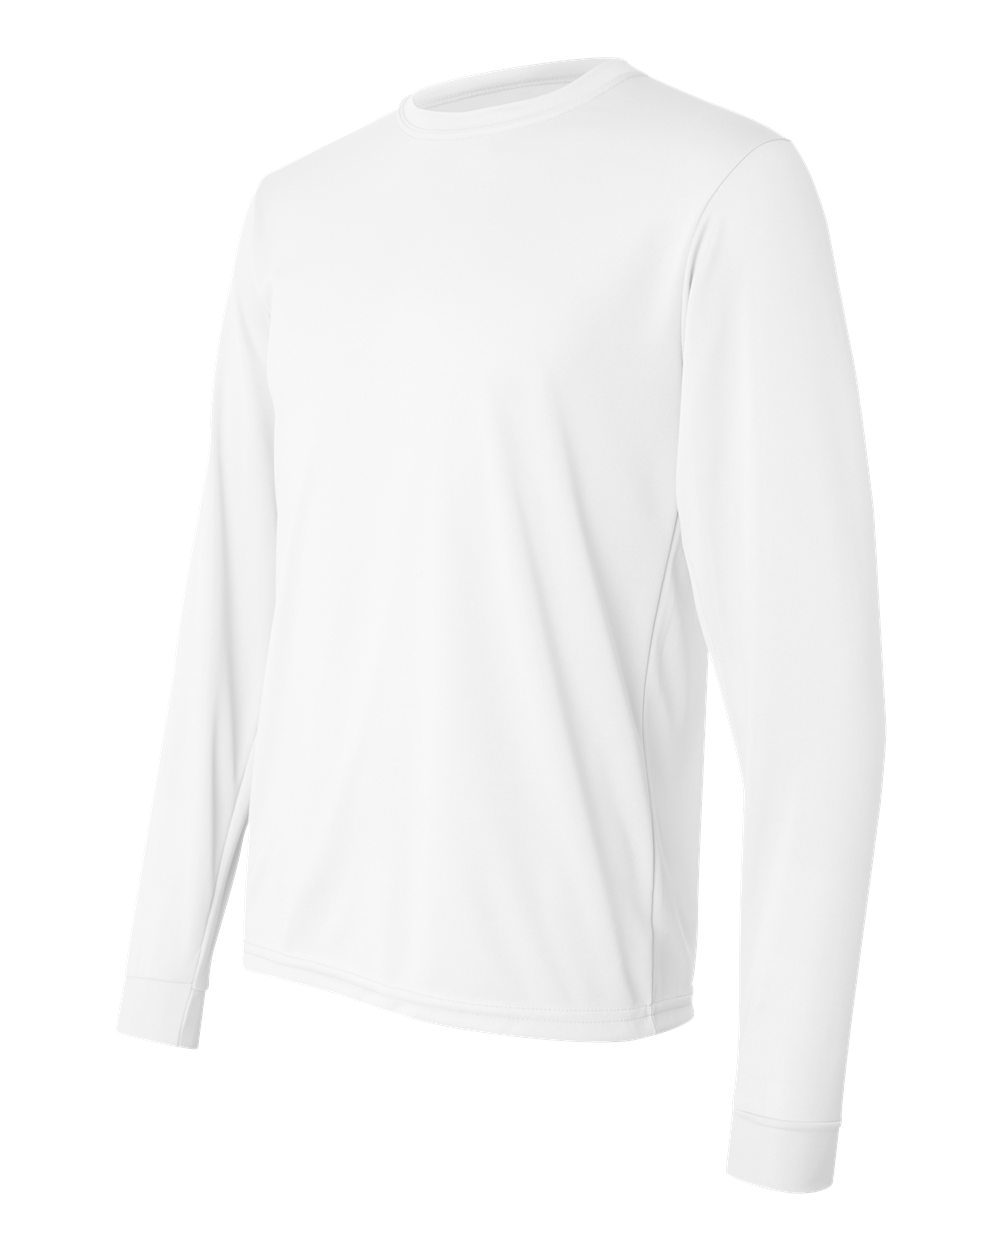 Augusta Sportswear 788 Performance Long Sleeve T Shirt